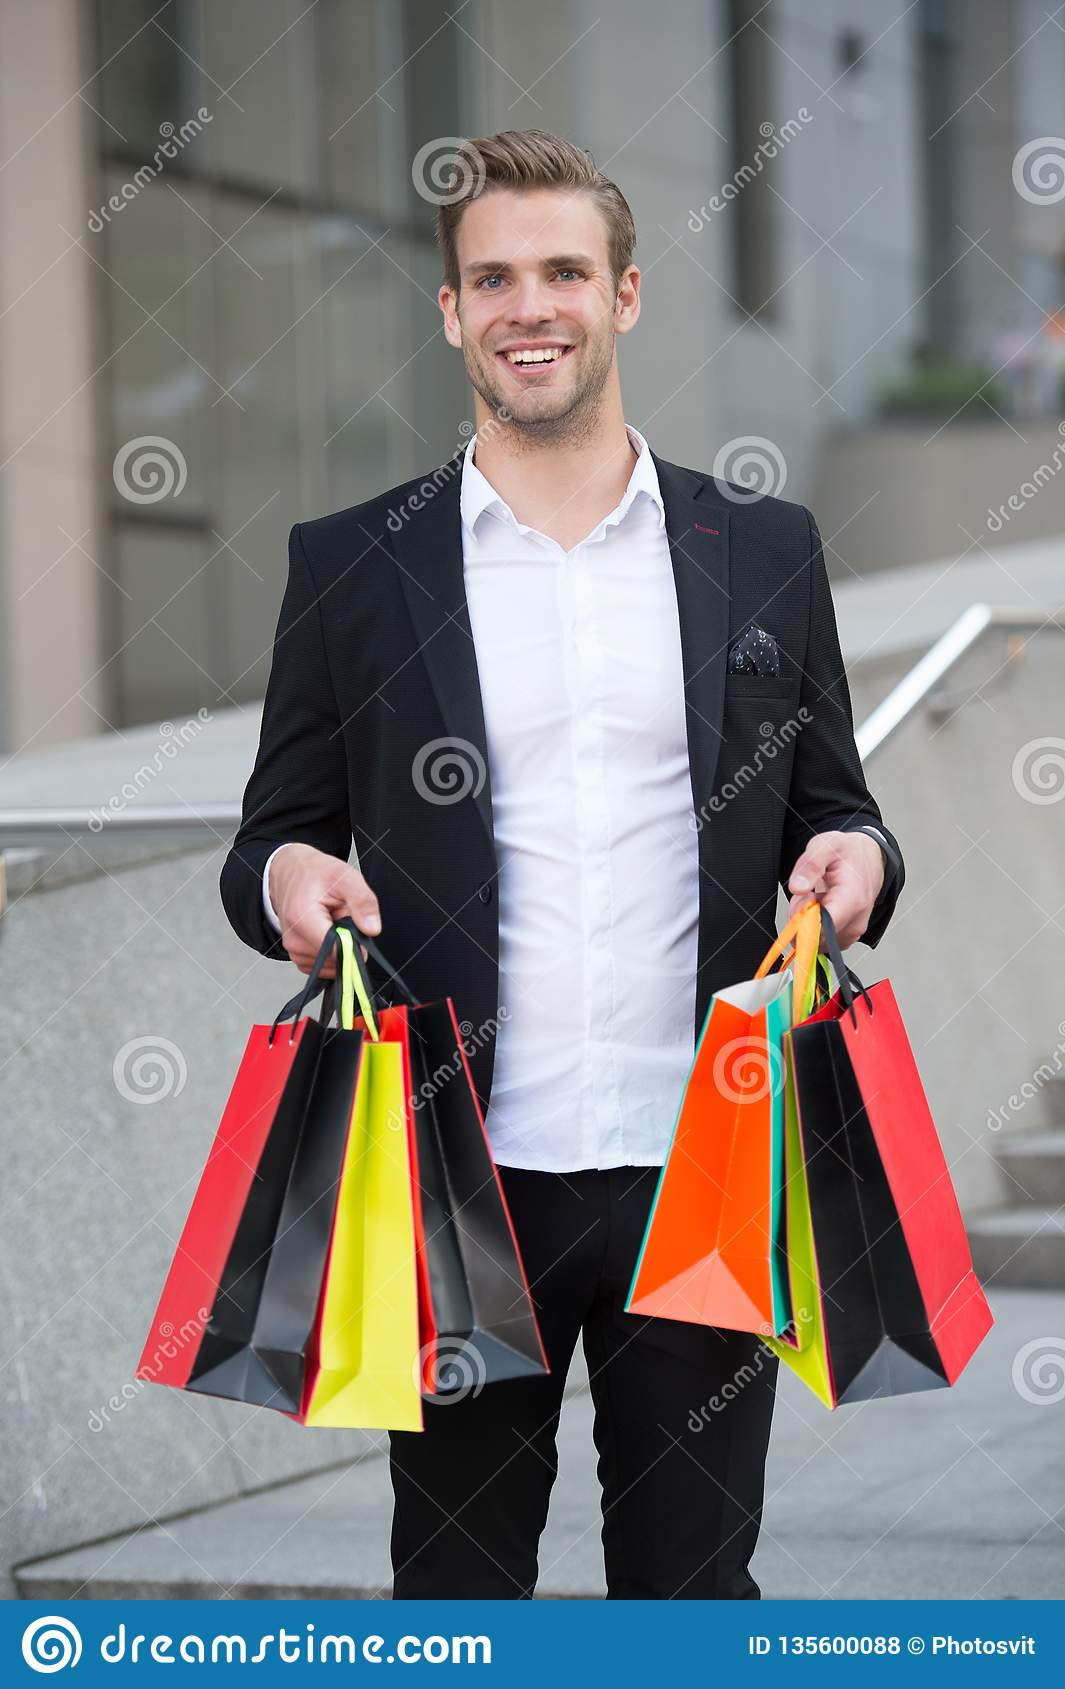 Businessman use shopping application. Man carries shopping bags urban background. Successful businessman shopping online